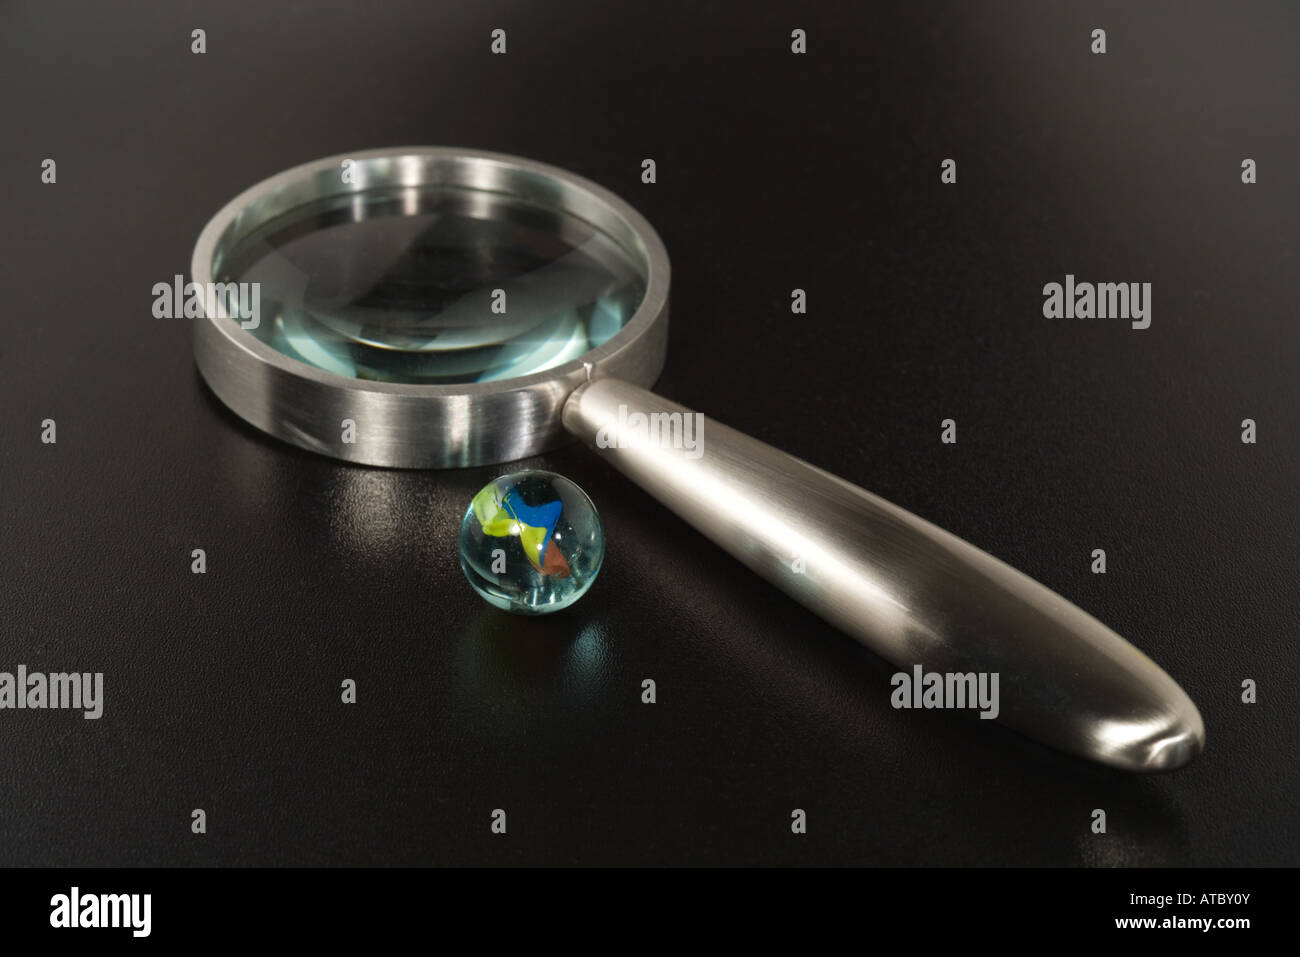 Glass marble and magnifying glass, close-up - Stock Image